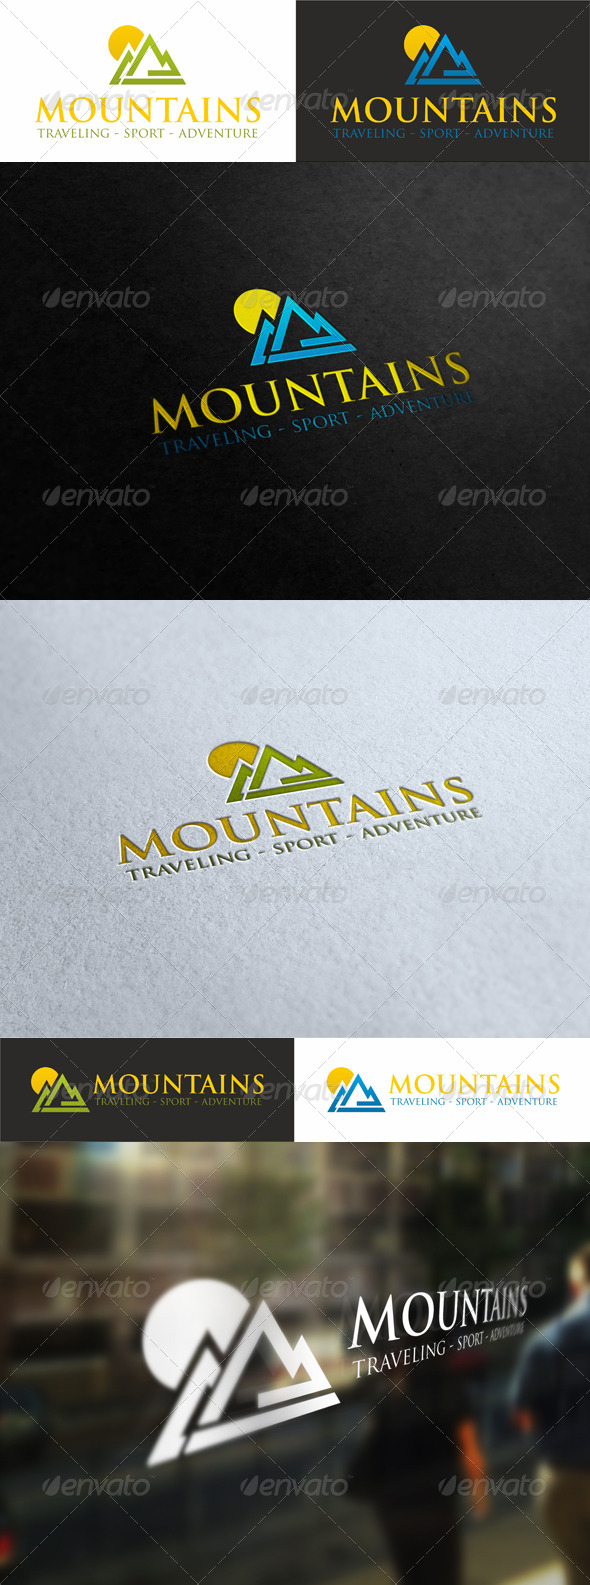 Sunny Mountains Traveling Sport Logo